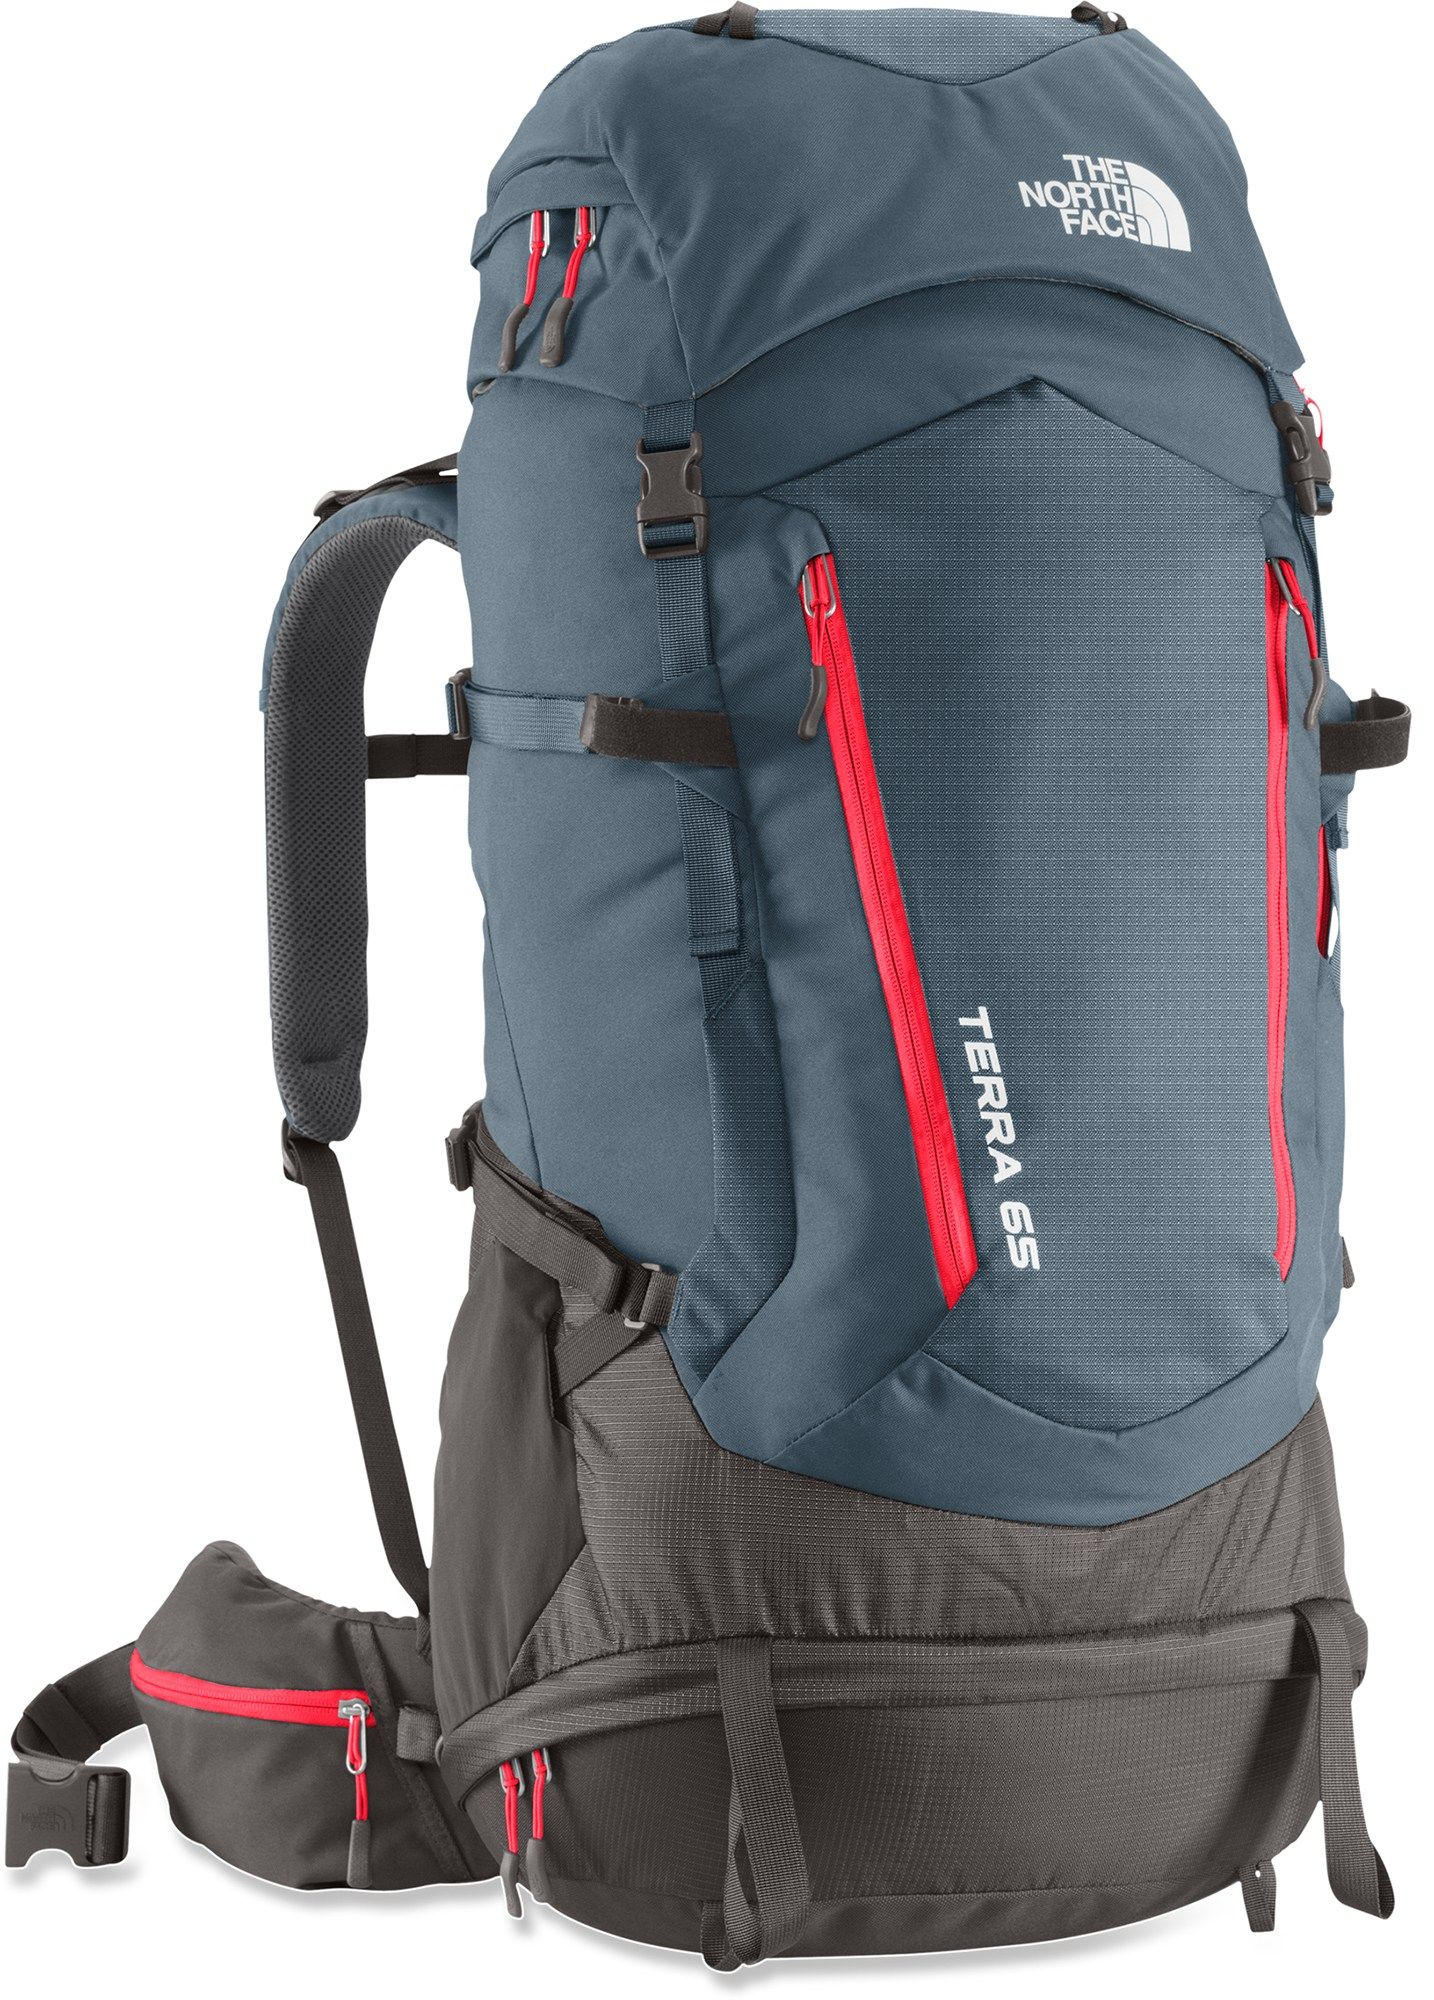 d04d999a0793 New hiking bag. The North Face Terra 65 Pack. The pack I must have!